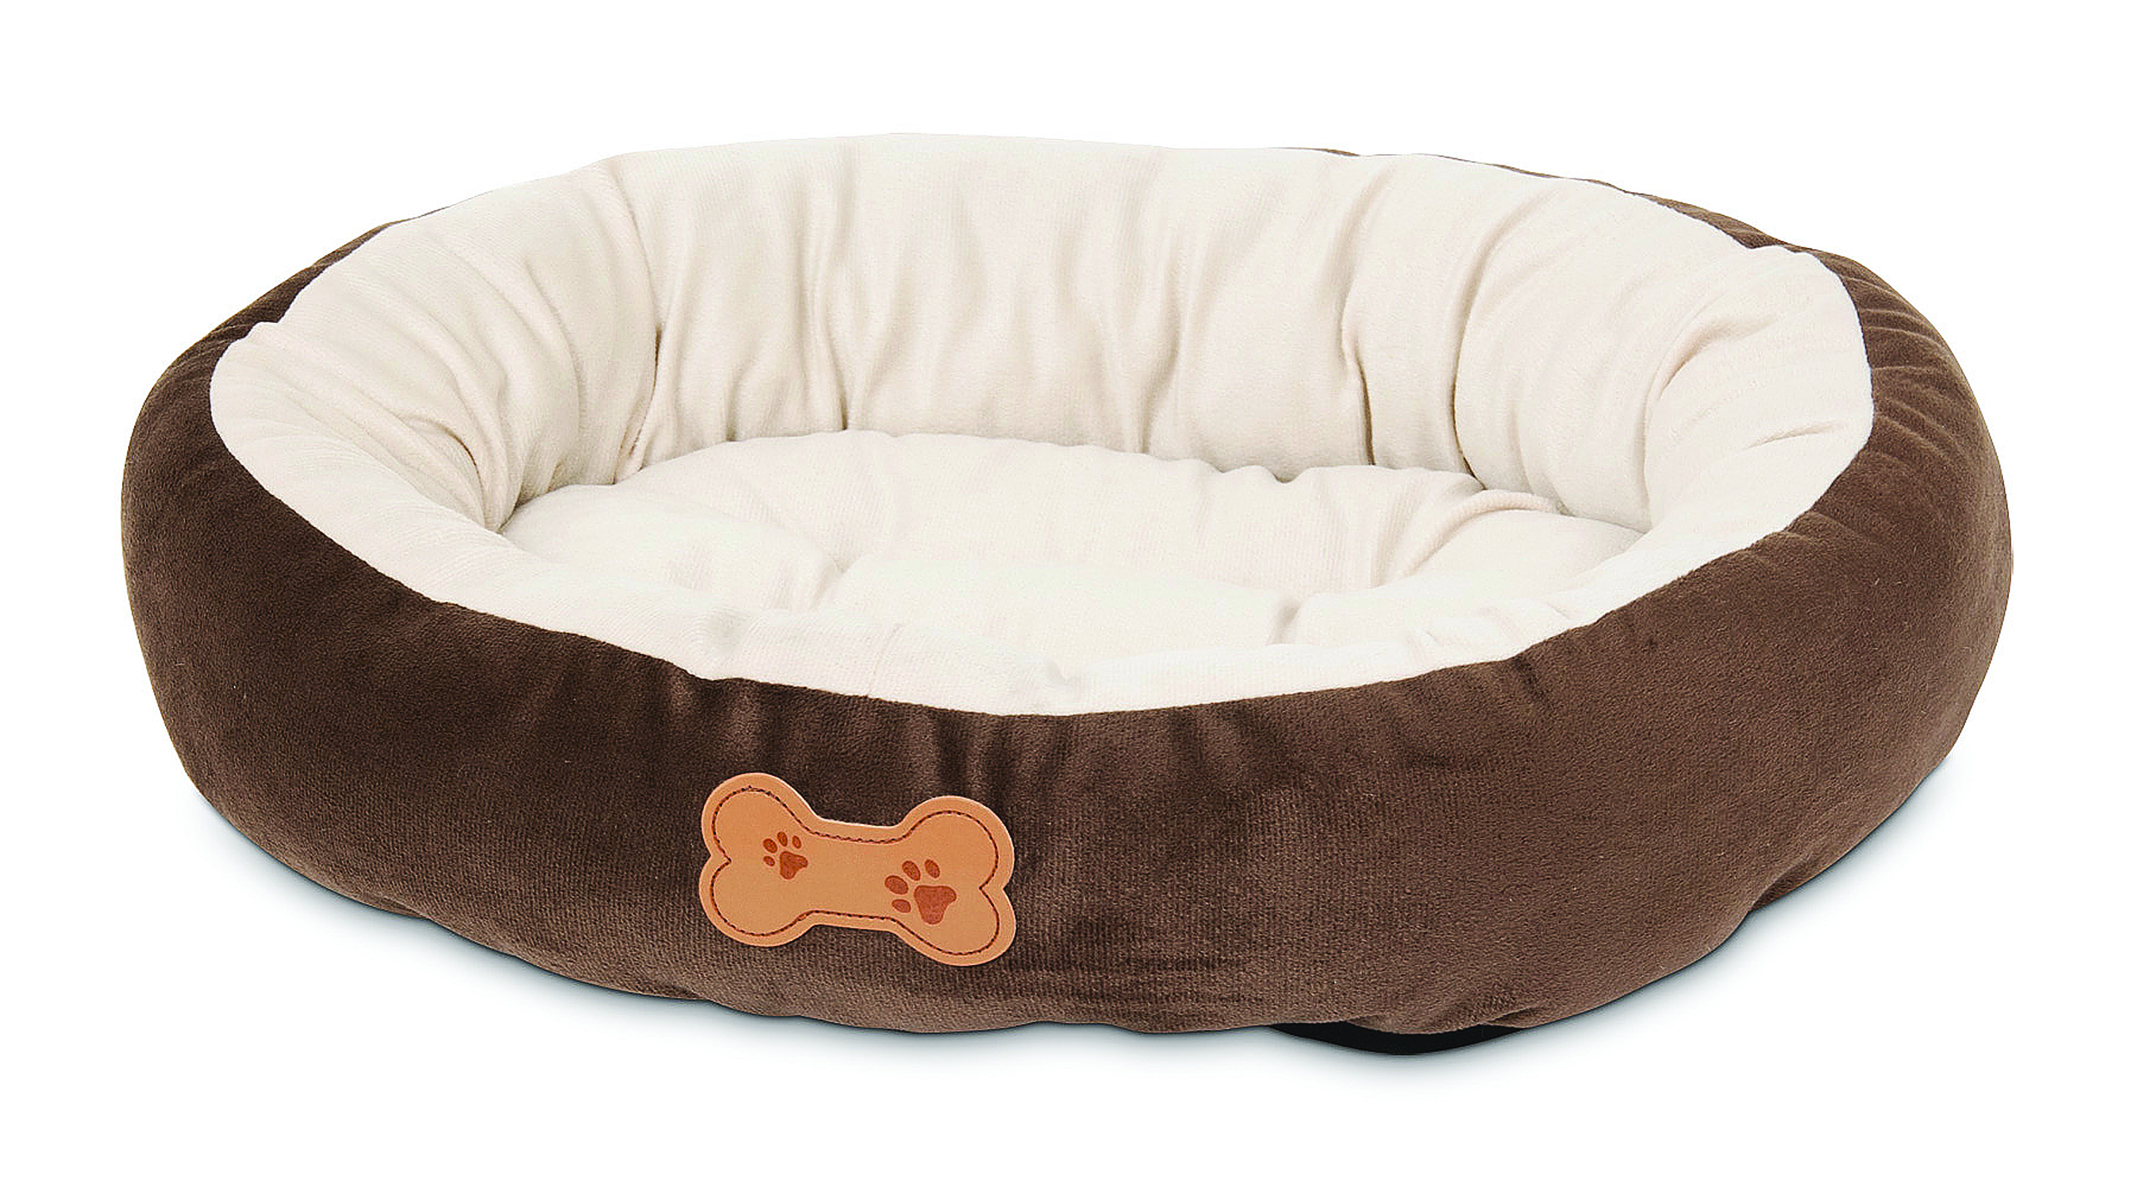 Petmate Round Bolster Bed With Bone Applique